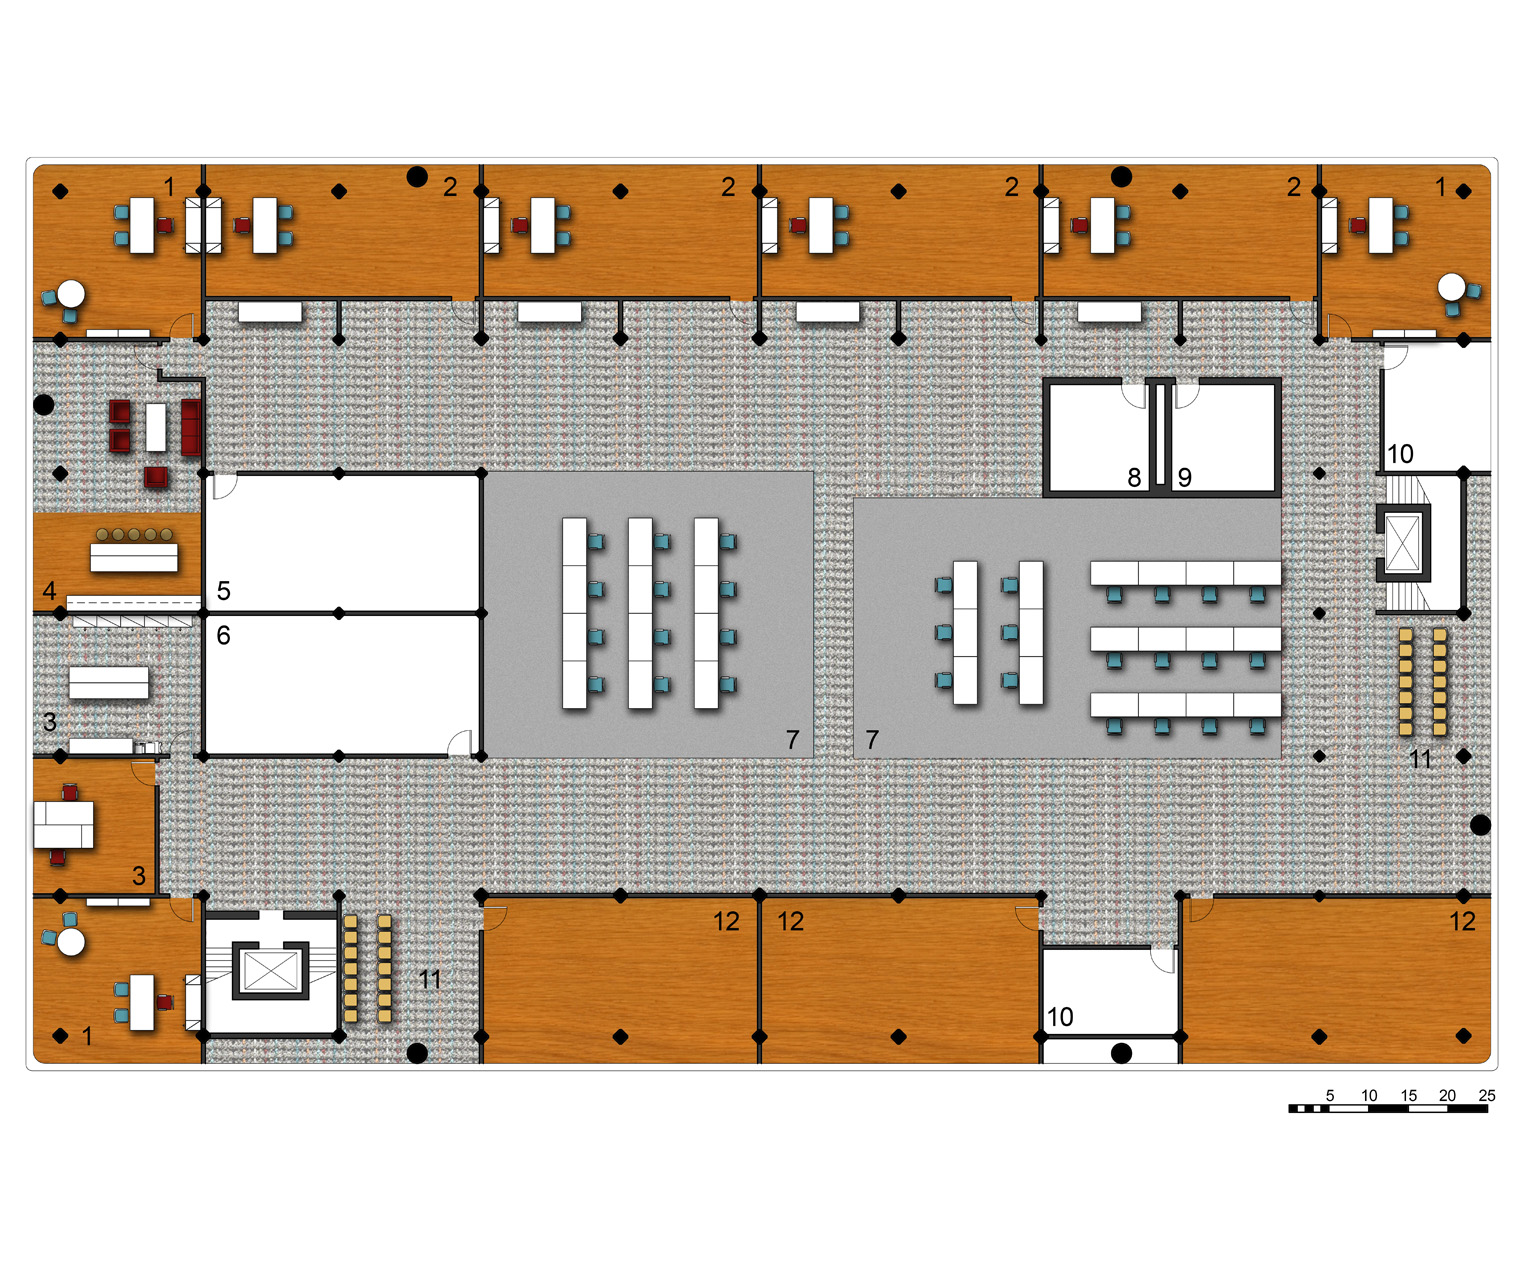 Second Level Floor Plan   1.Administrative Office   2.Dance & Music Therapy Room   3.Administrative Support   4.Break Room   5.Mens' Locker Room   6.Womens' Locker Room   7.Open Art Instruction Studio   8.Mens' Restroom   9.Womens' Restroom   10.General Storage   11.Waiting Room